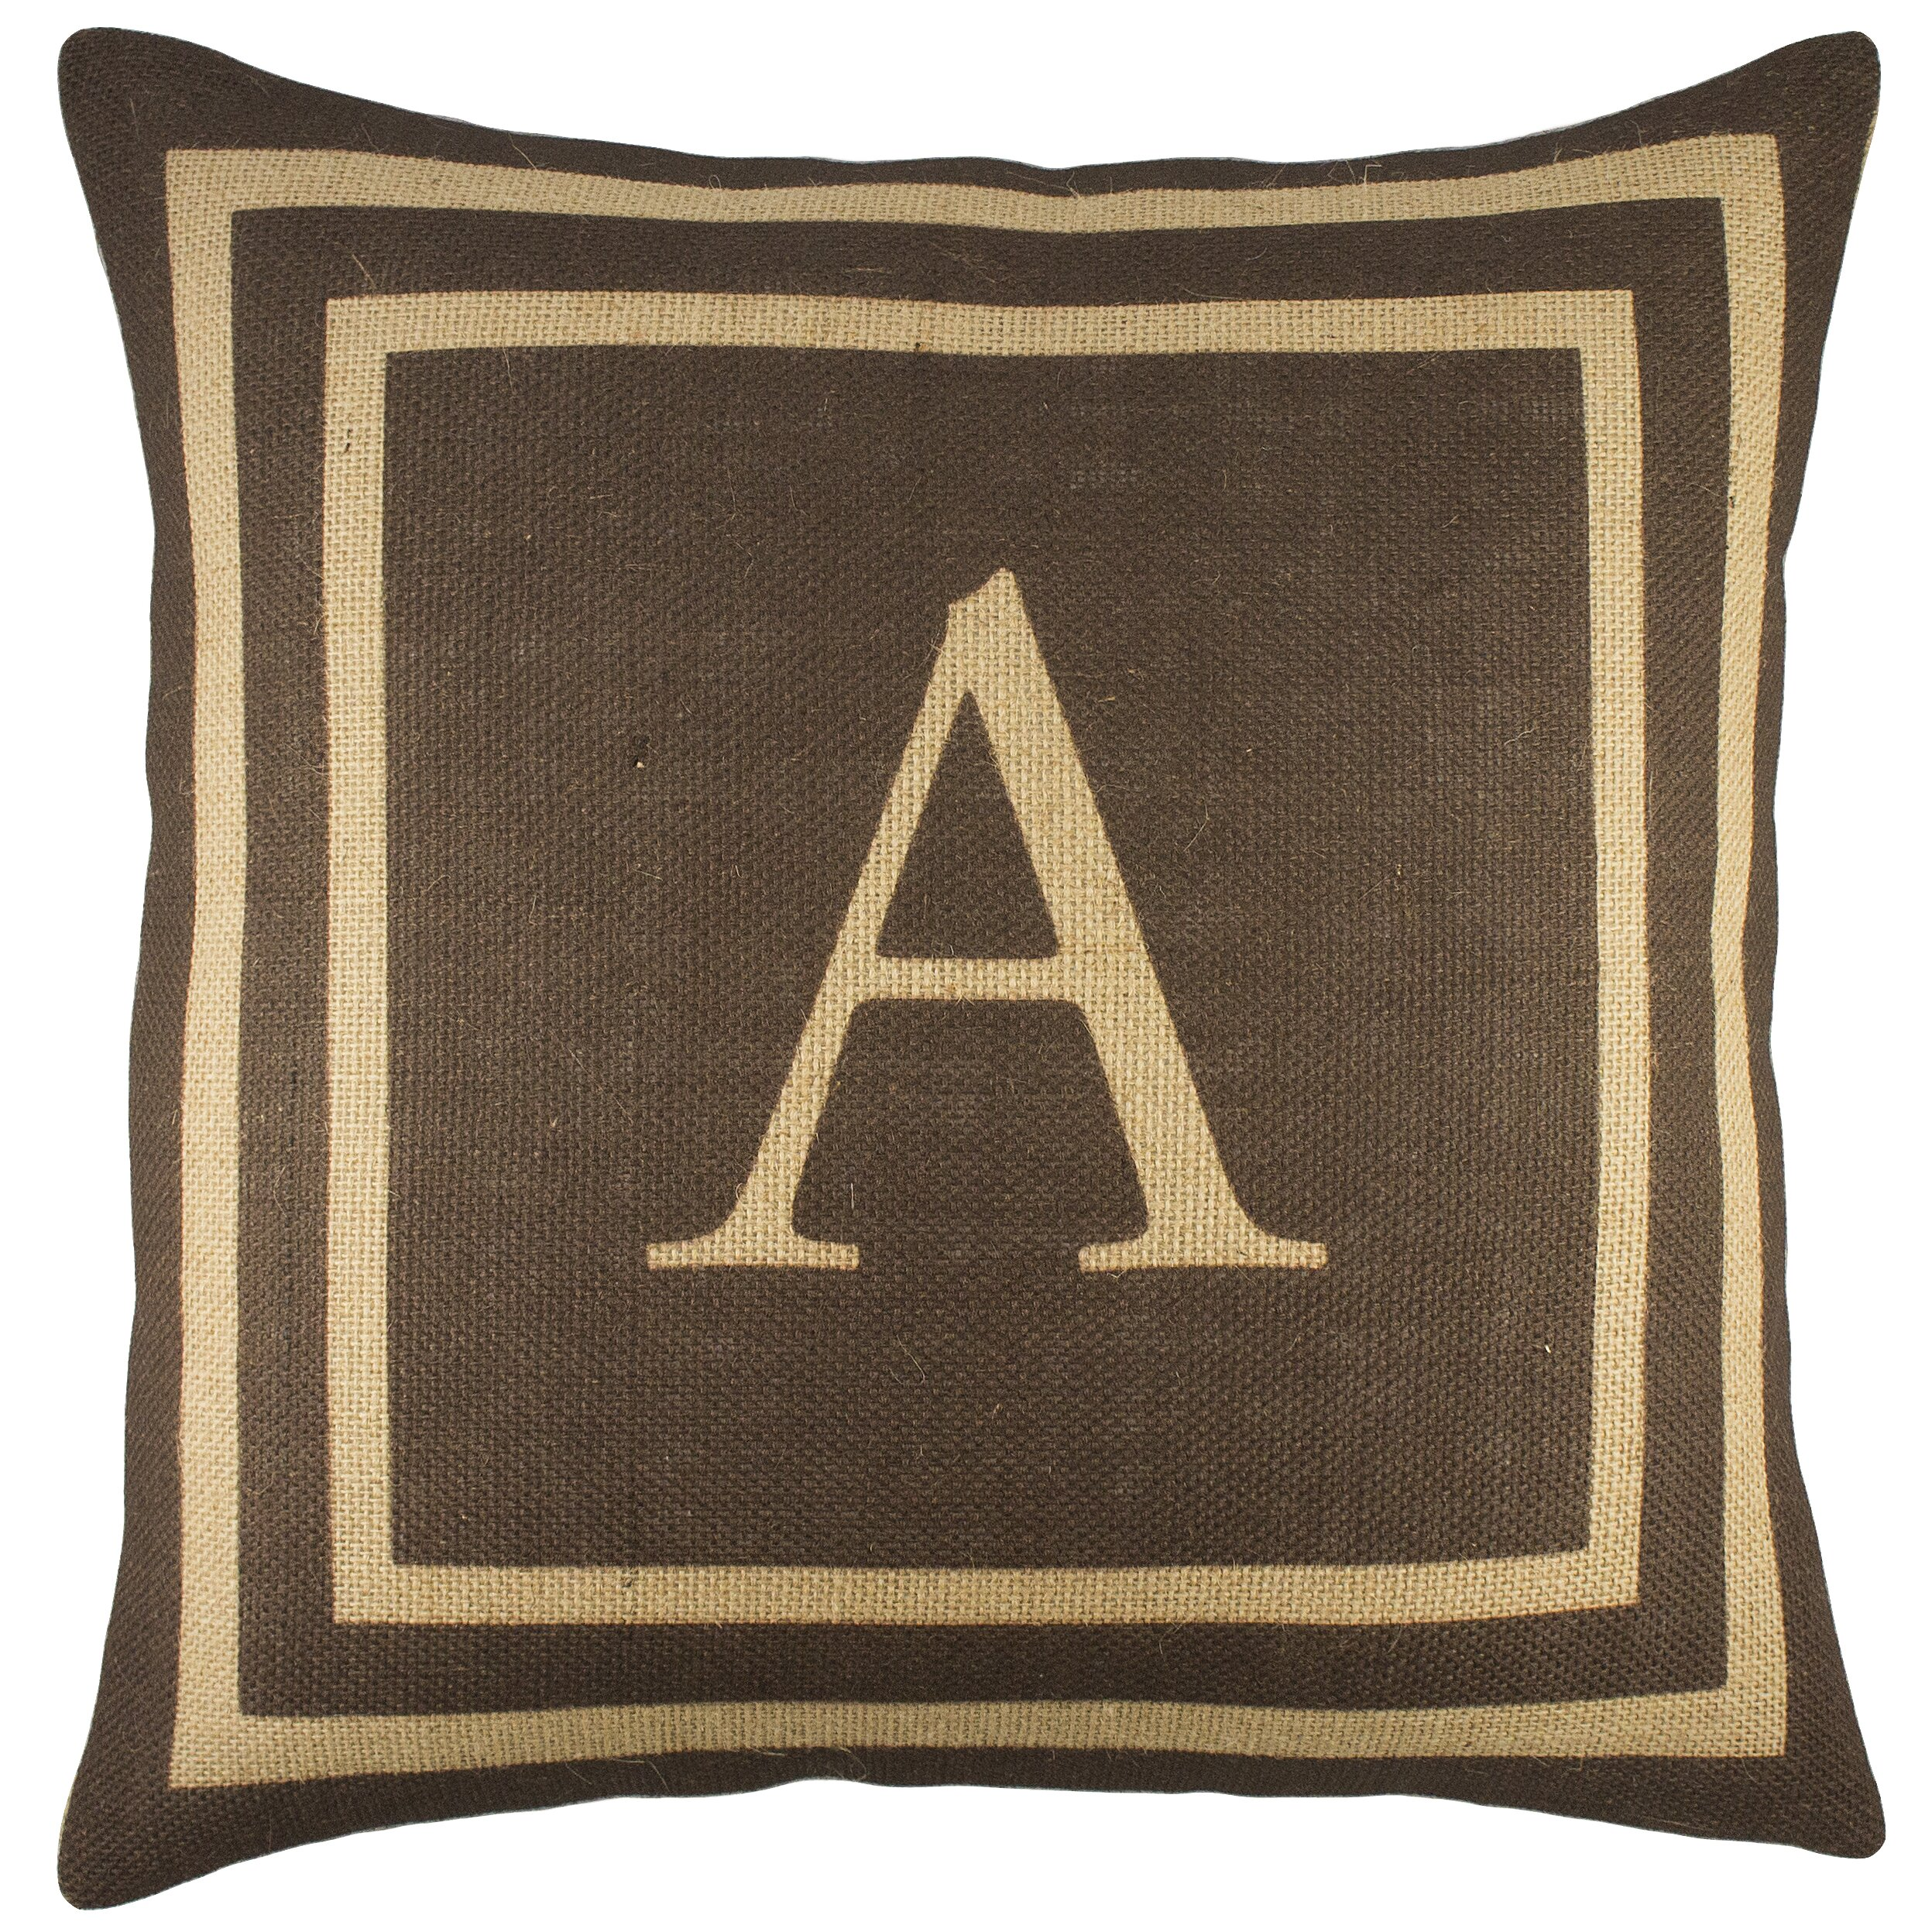 TheWatsonShop Monogram Burlap Throw Pillow & Reviews Wayfair